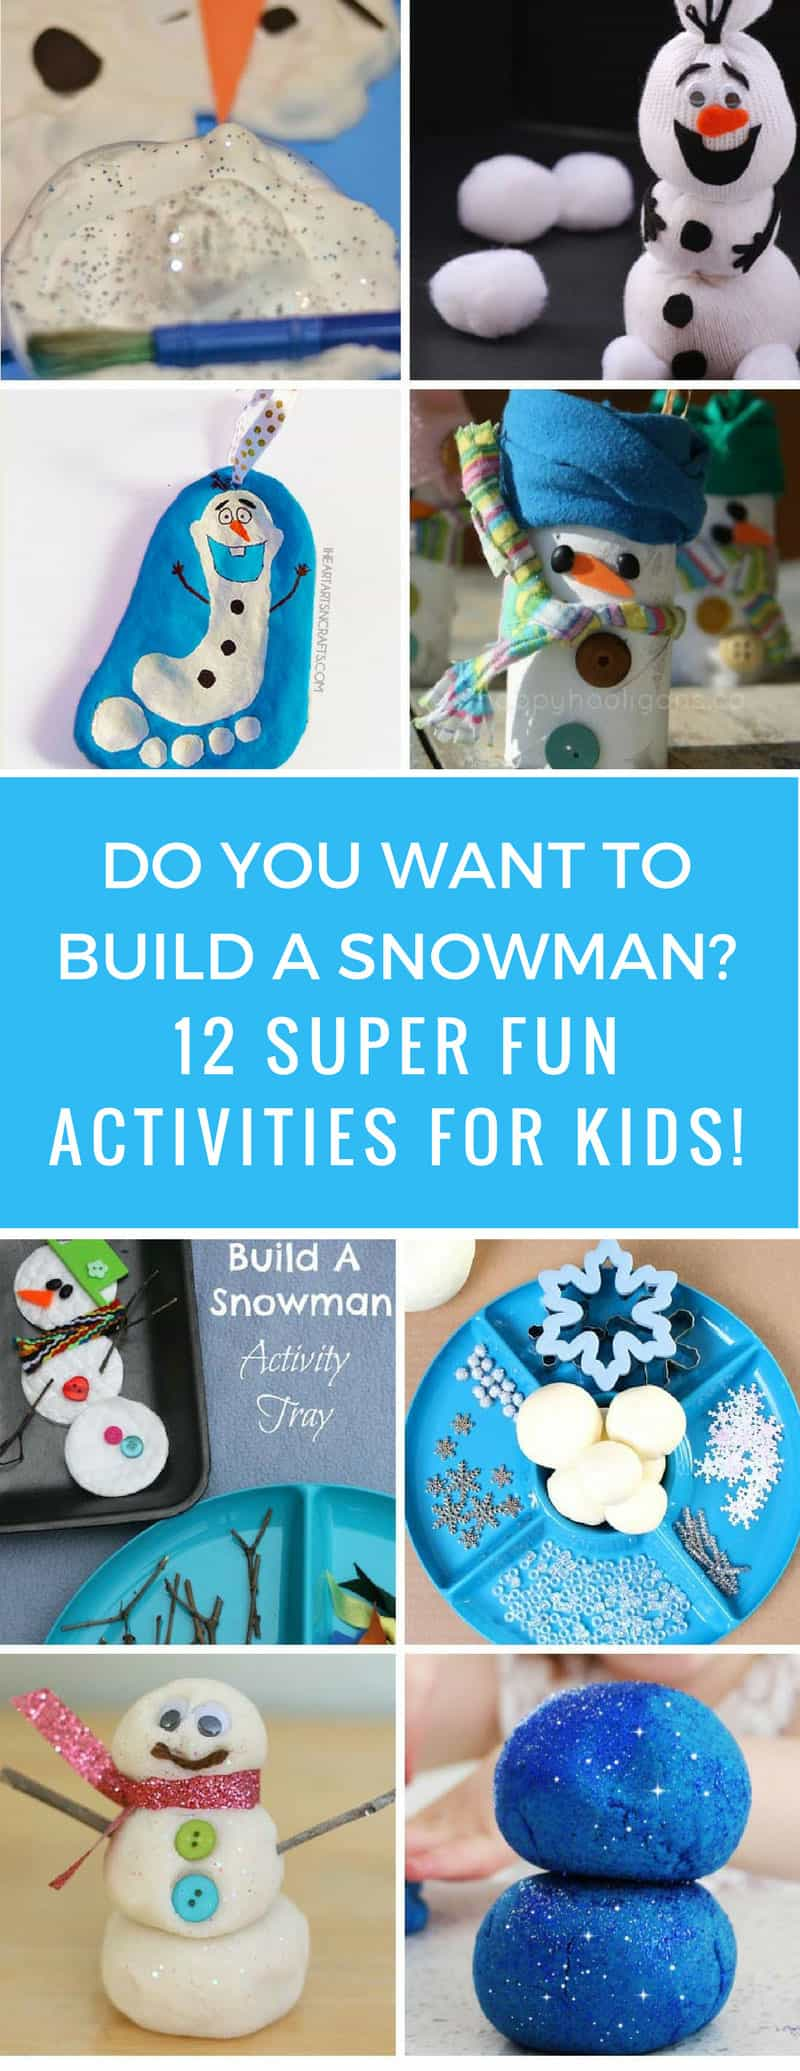 How fun! These snowman crafts will keep us busy through the winter until we can build a real snowman! Thanks for sharing!